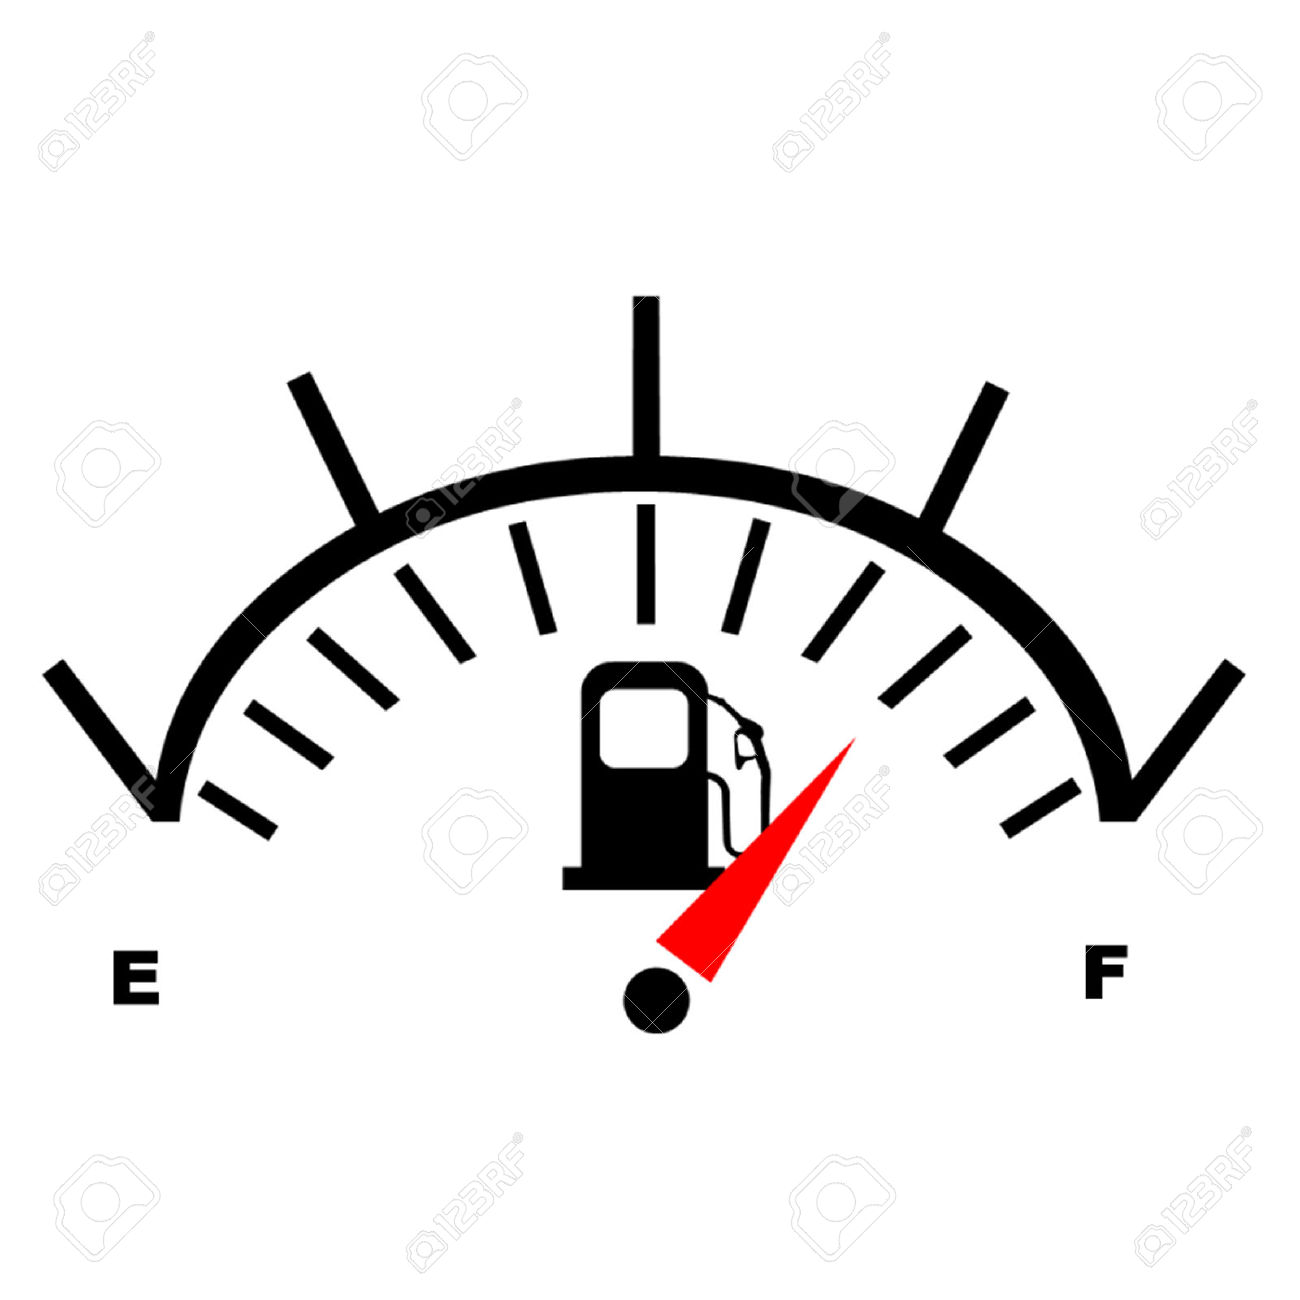 Petrol Fuel Gauge Royalty Free Cliparts, Vectors, And Stock.